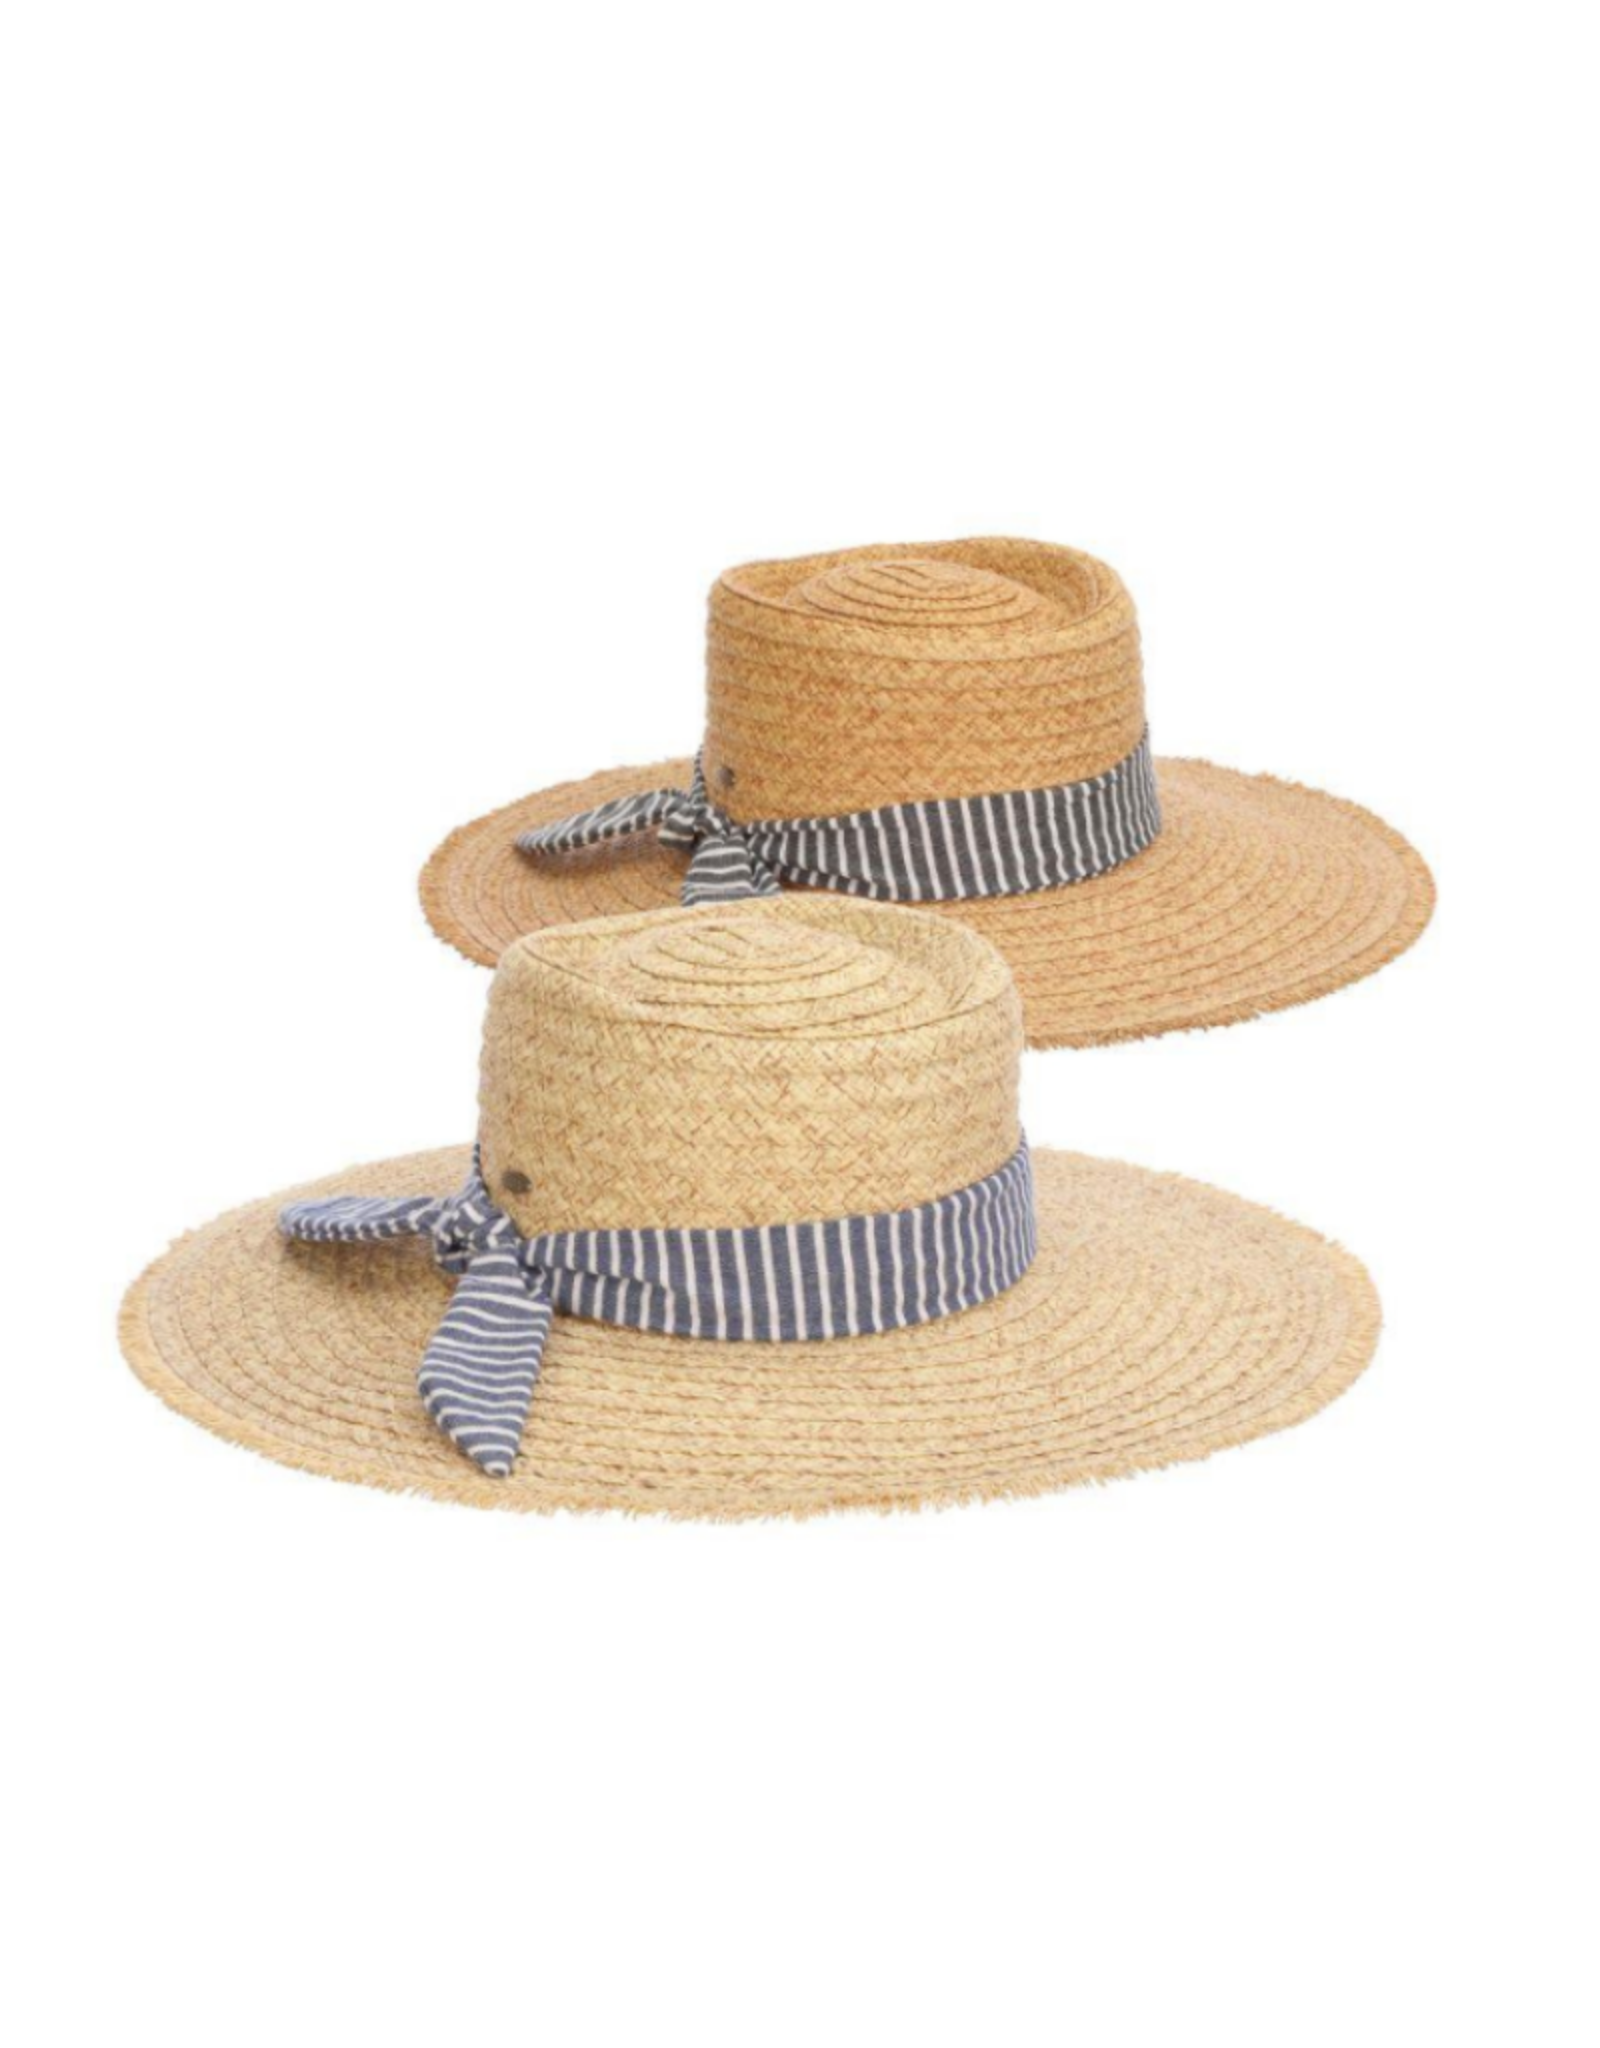 """HAT-BOATER """"BARNESE"""" W/NAVY STRIPED BAND"""